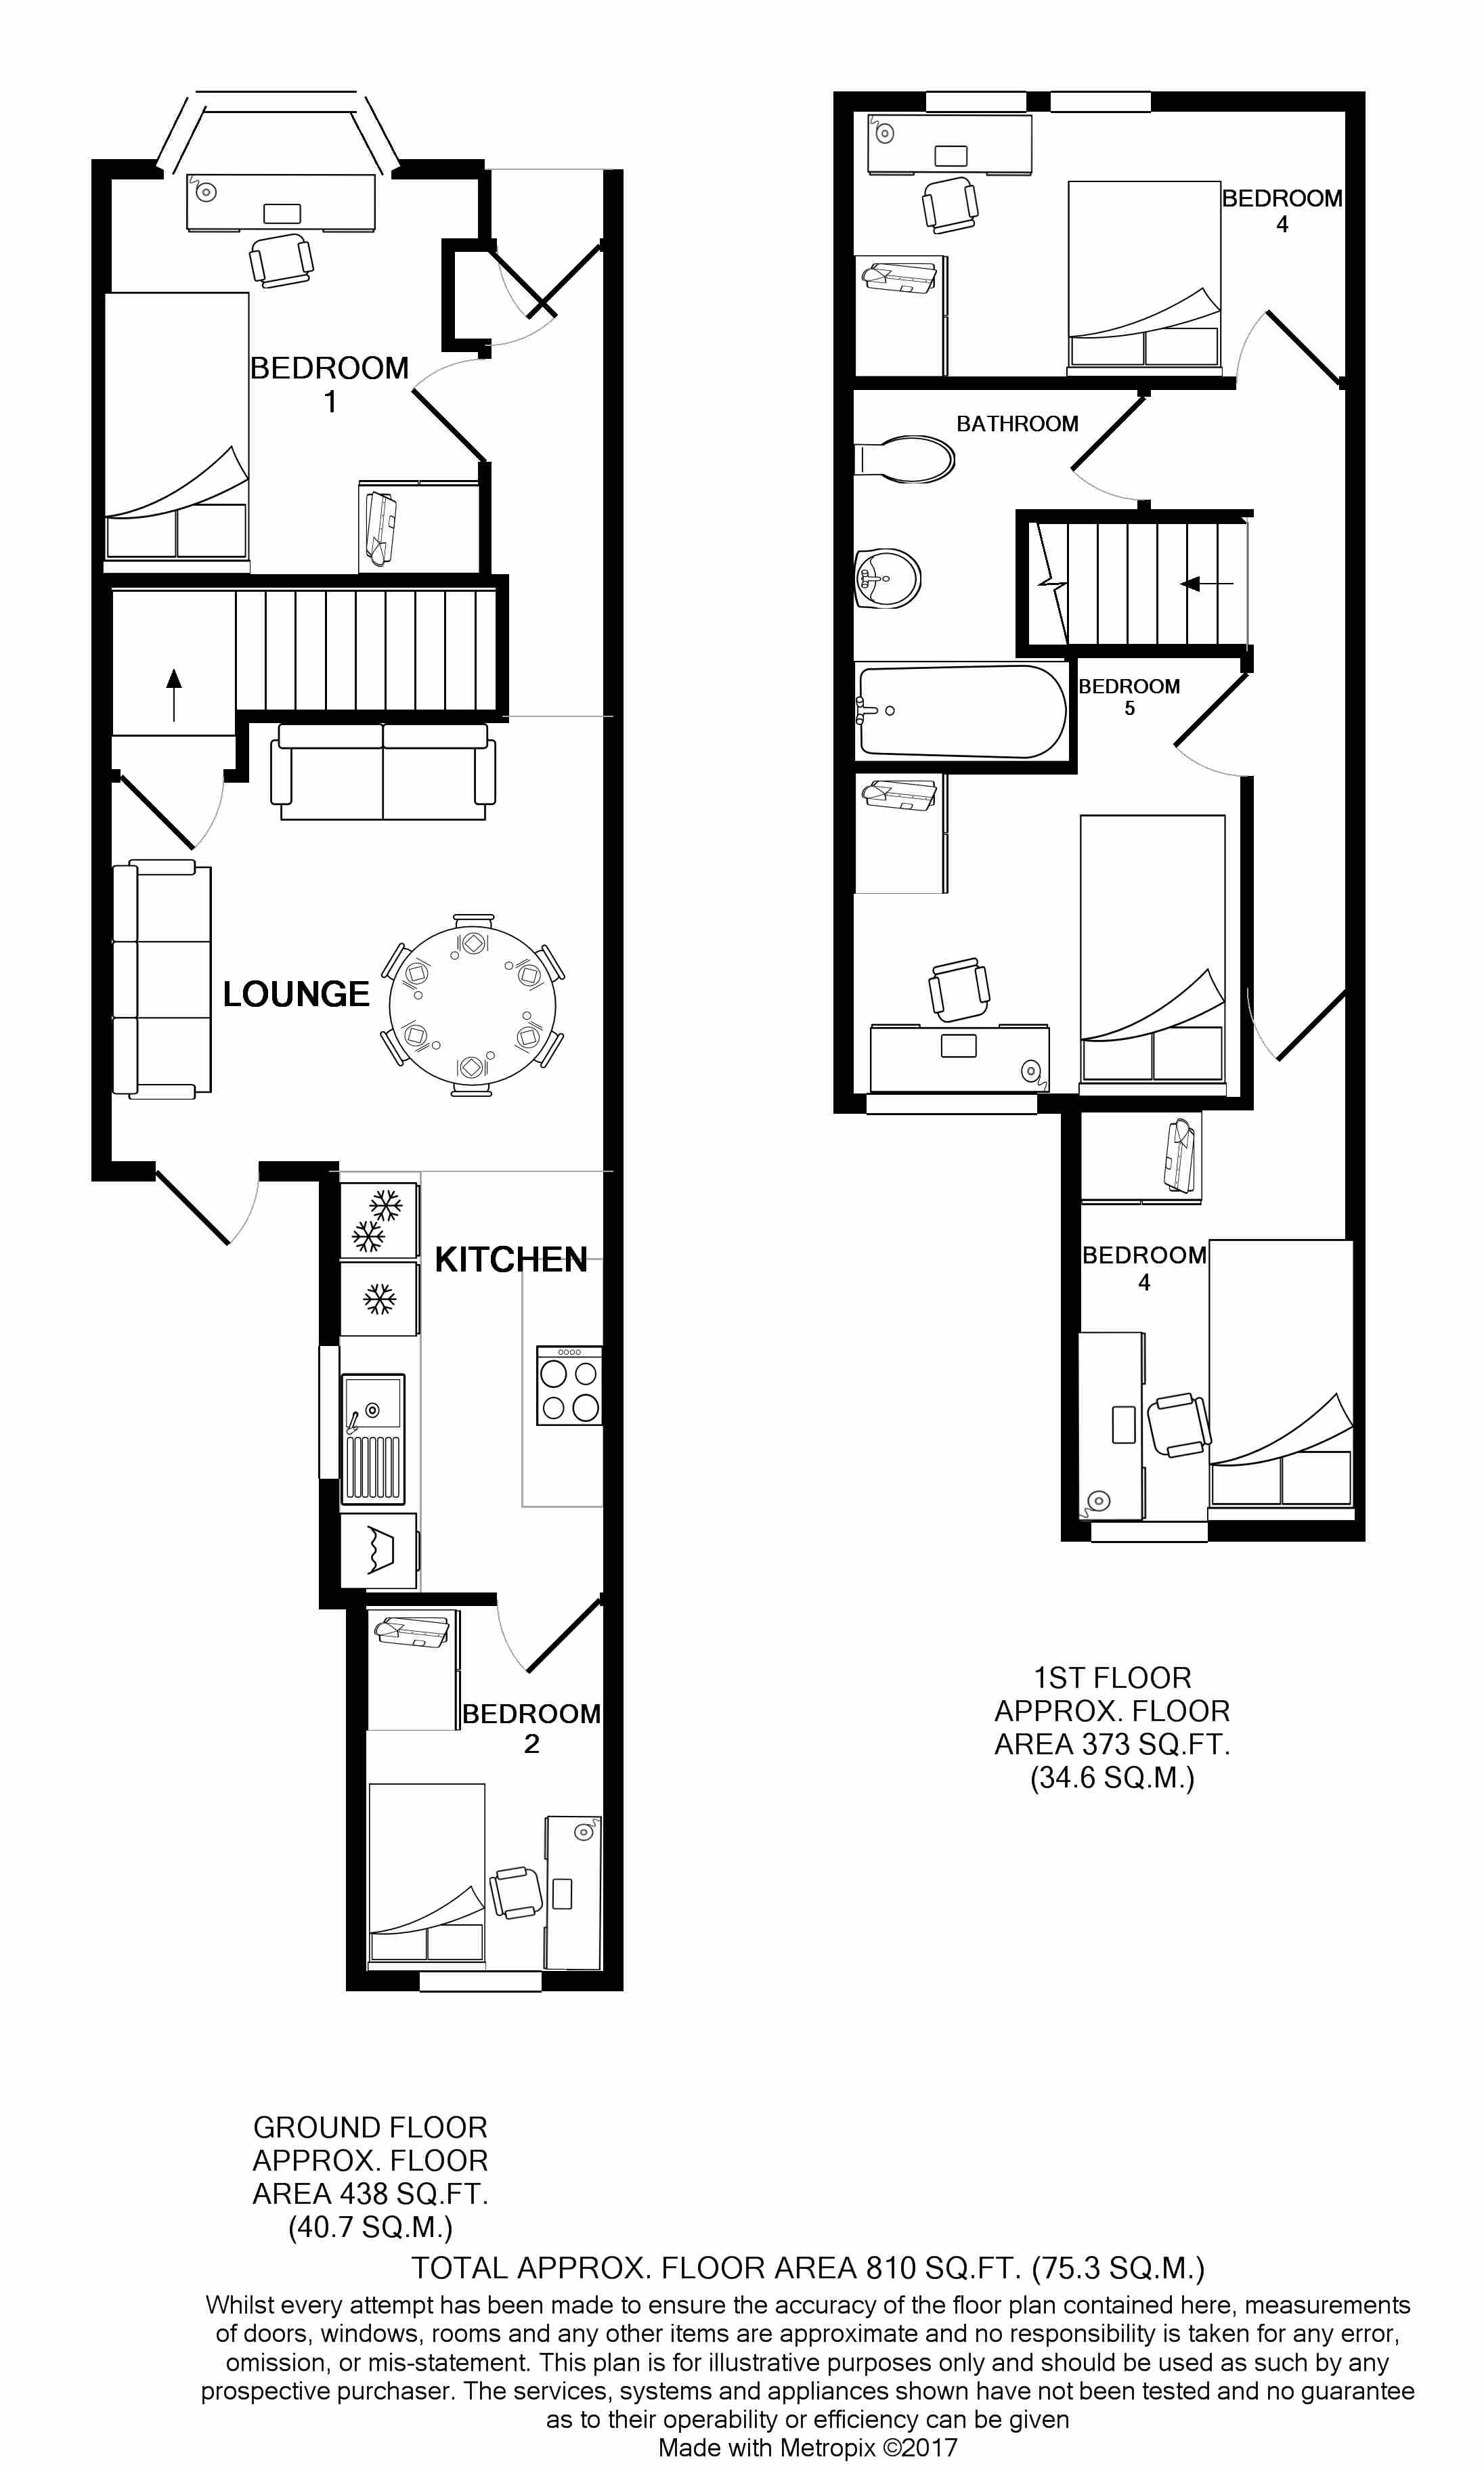 233 Leek Road Floorplans